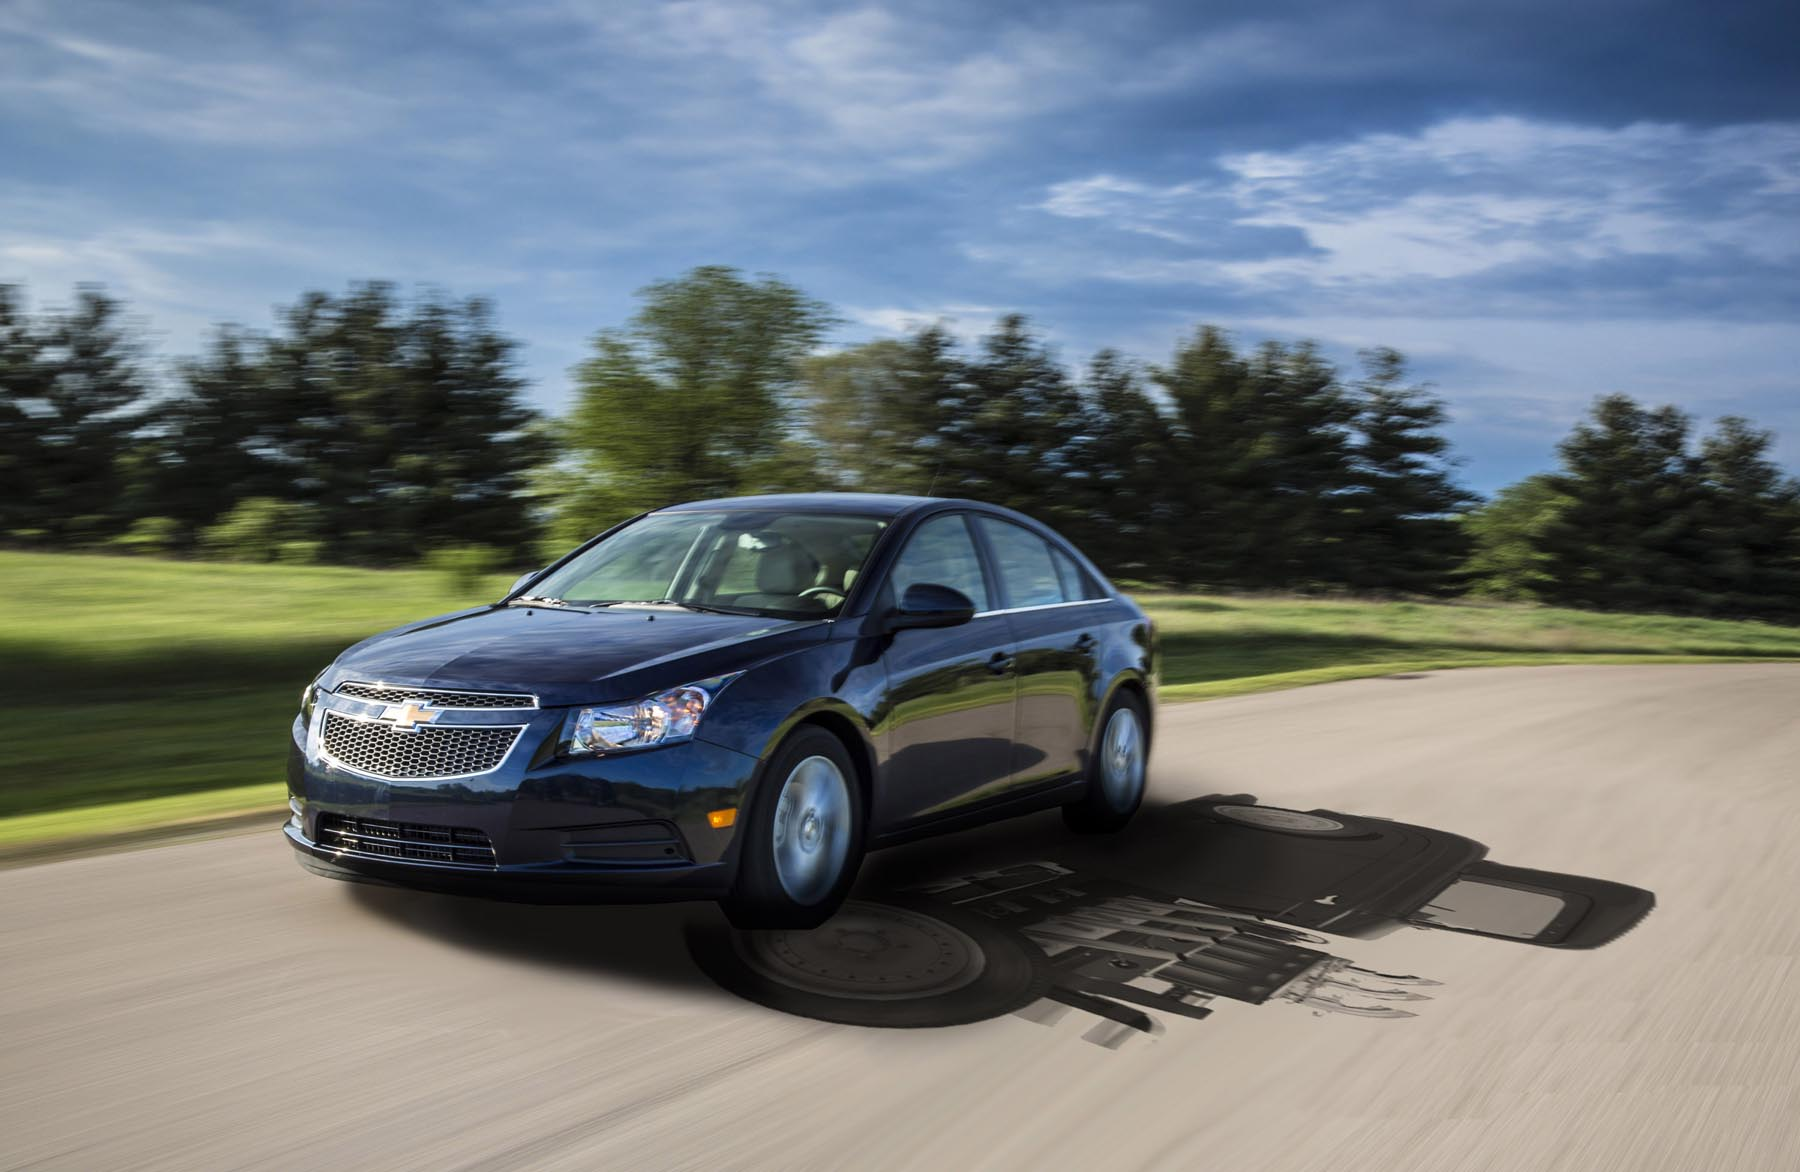 <b>5th -</b> Chevrolet's aging Cruze followed a similar pattern to the Mazda, which means staying pat in fifth place and keeping the Volkswagen Jetta out of the top five for another year. Even with its excellent available clean diesel engine, Chevy must be hoping its updates for 2015 help deliver more interest than the 34,421 sold in 2014.